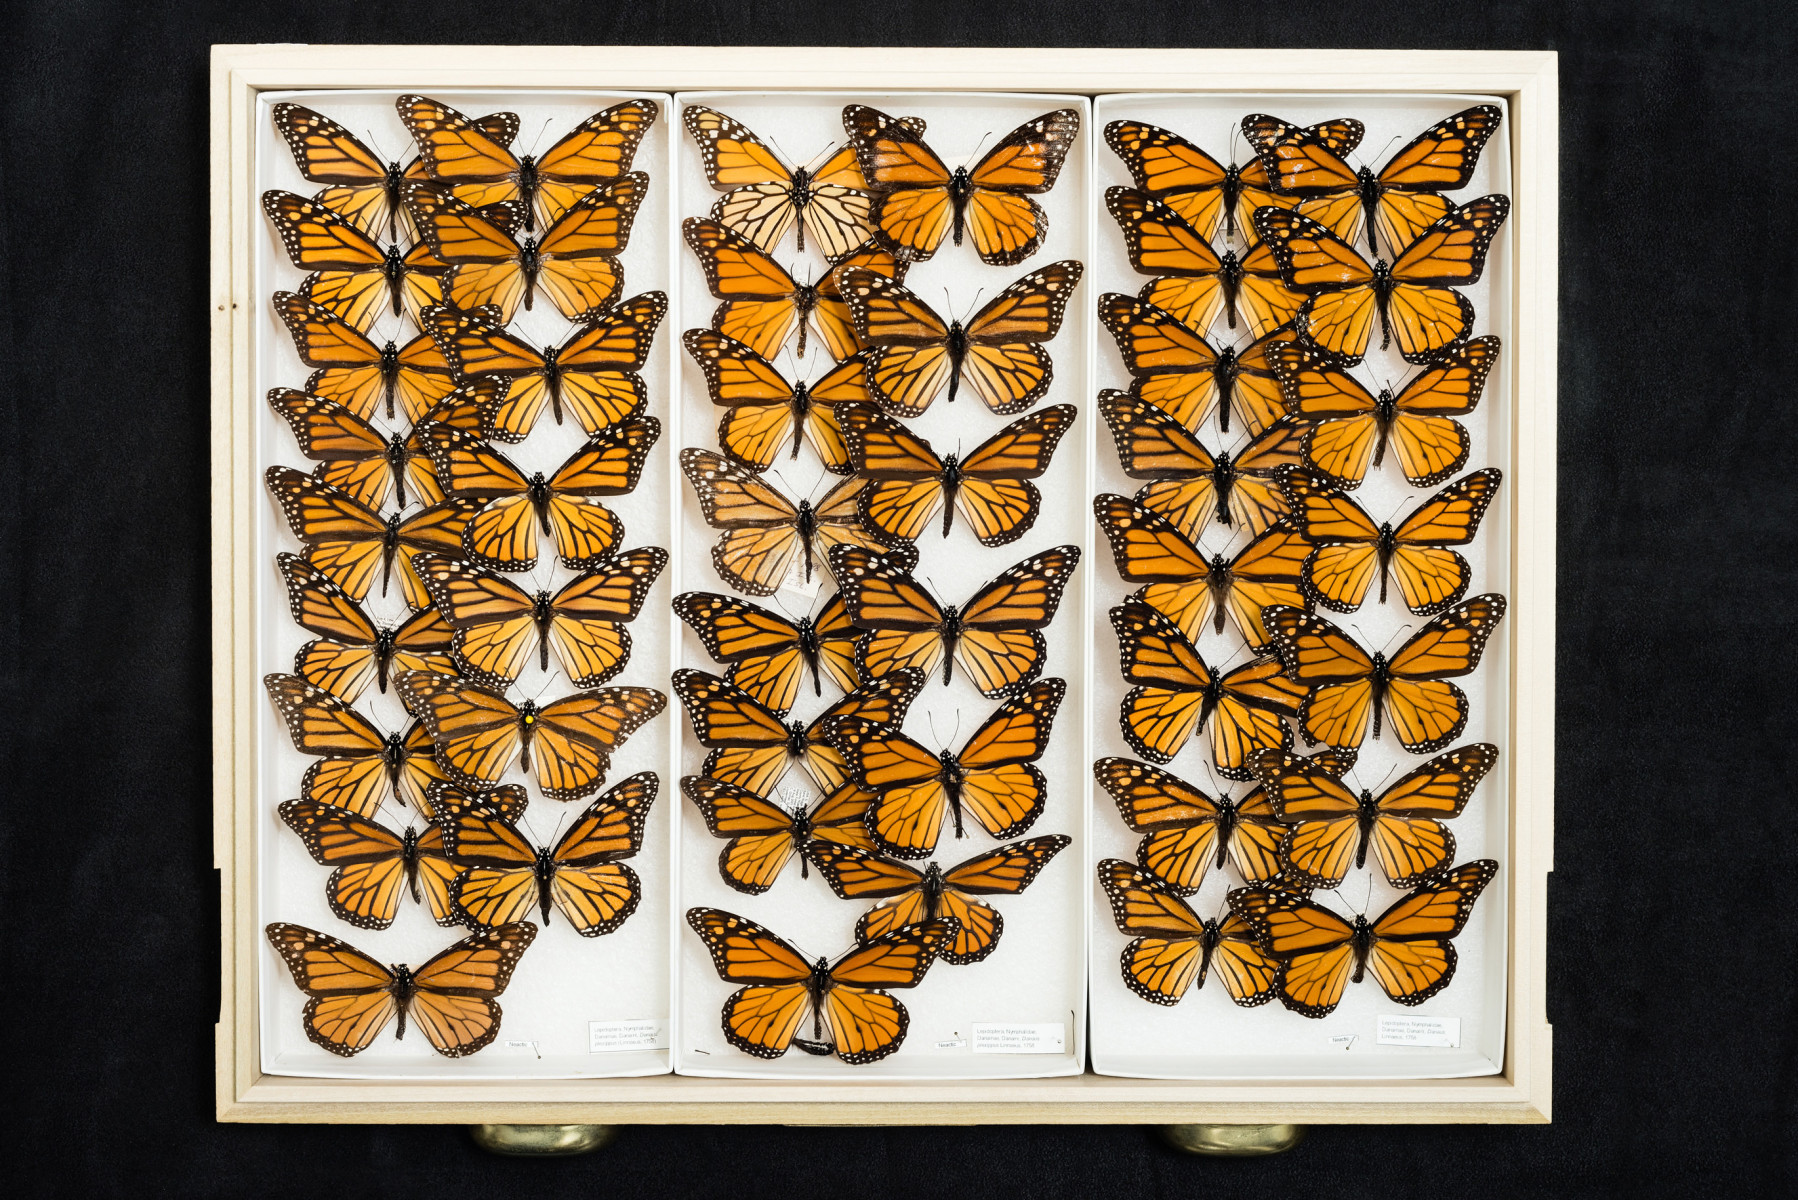 Monarch butterfly insect Danaus plexippus - Extinction